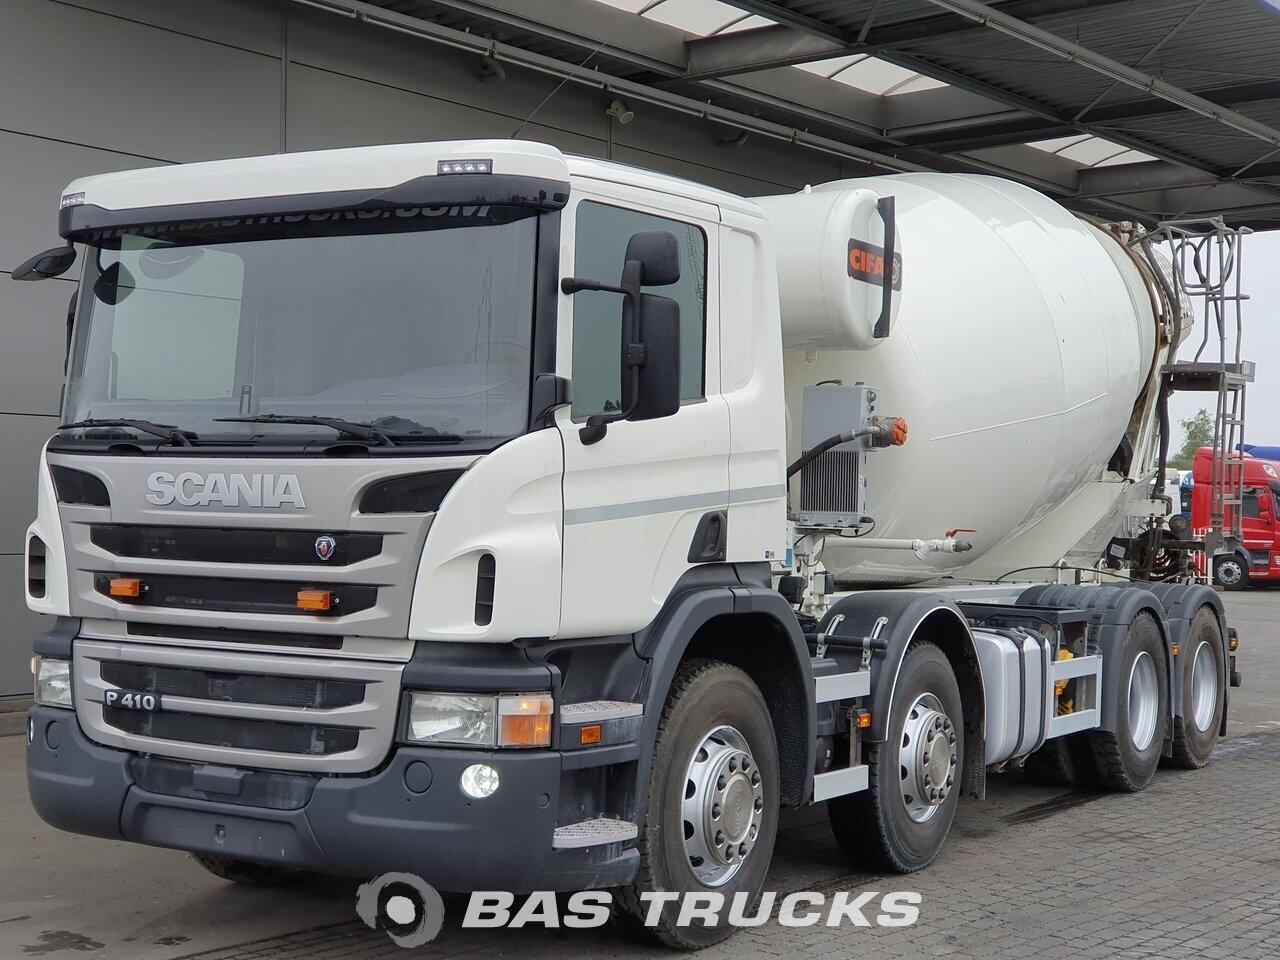 For sale at BAS Trucks: Scania P410 8X4 09/2017